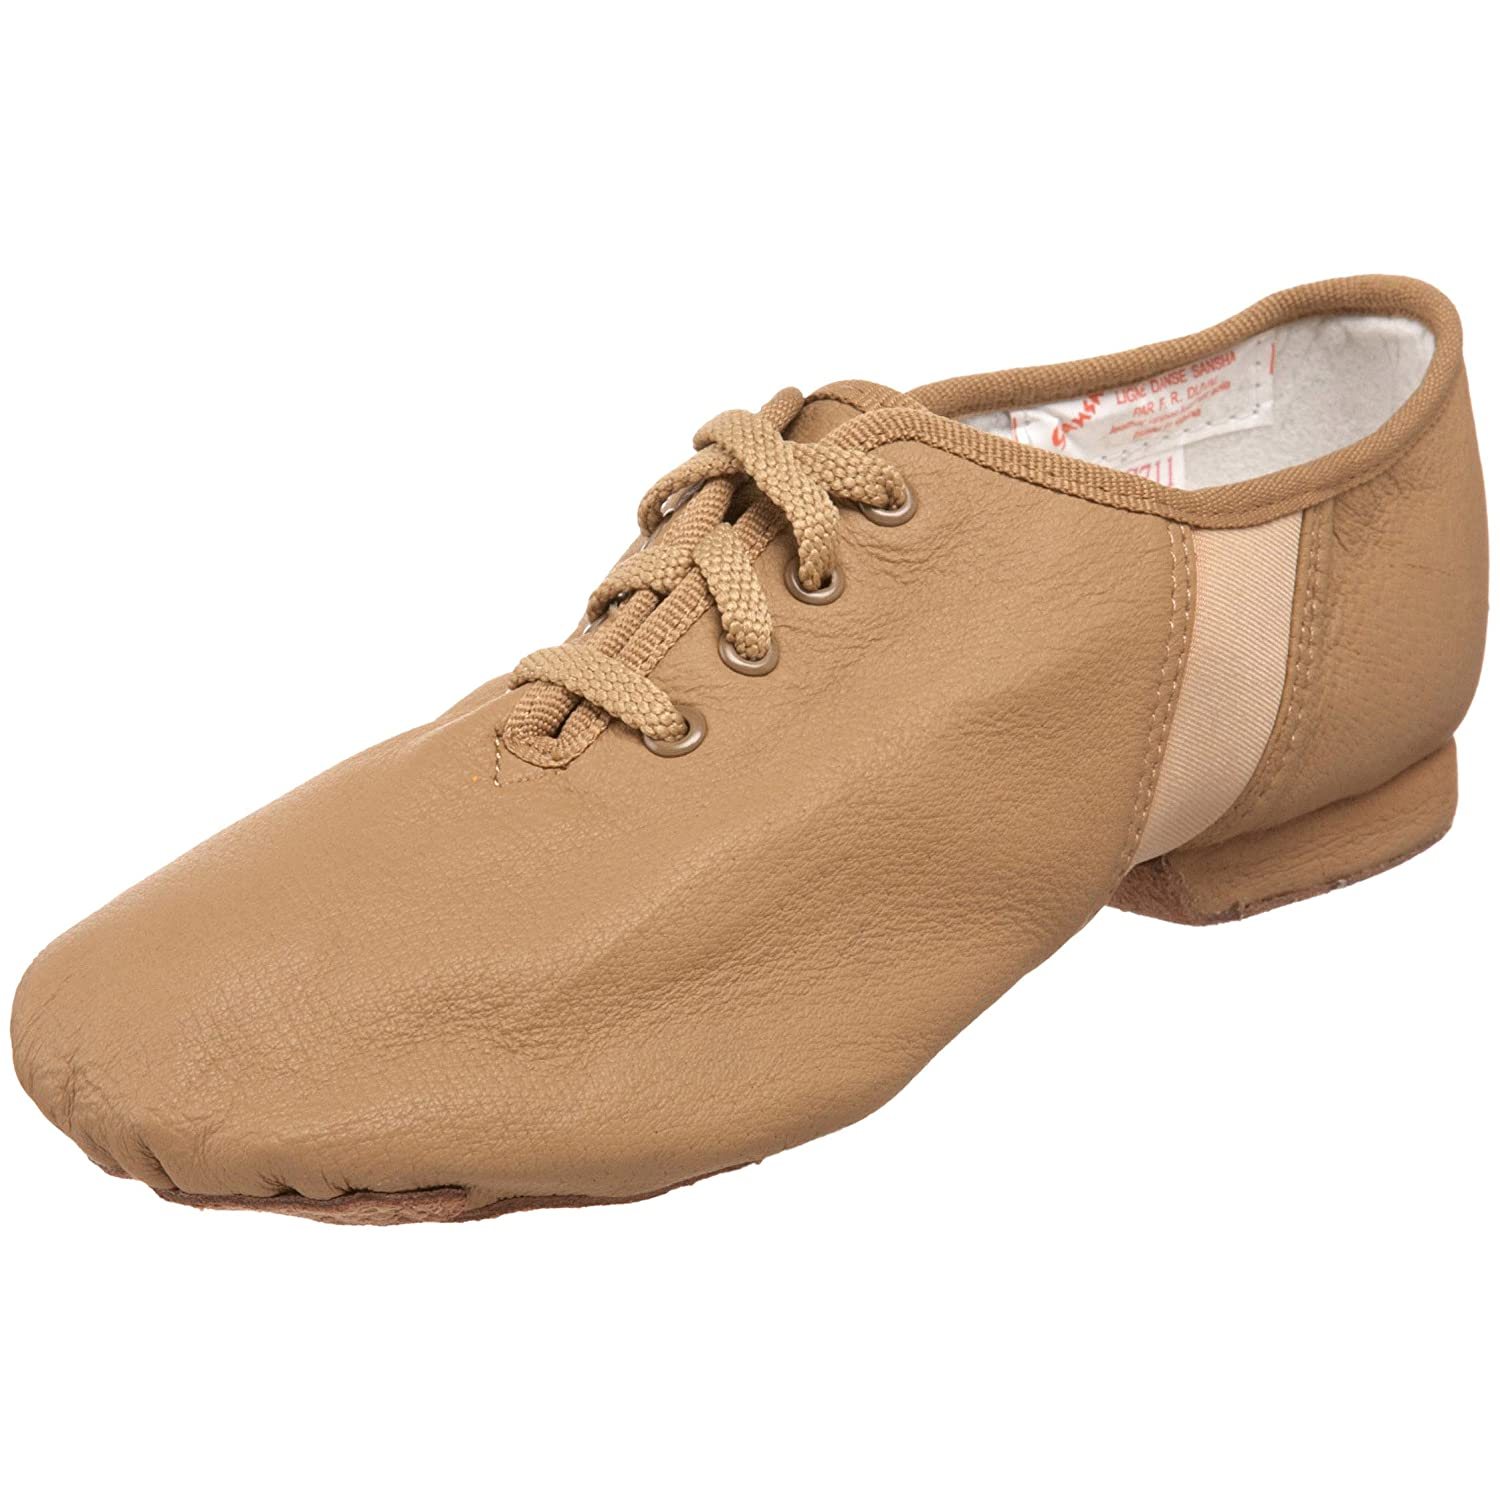 Sansha Tivoli Lace-Up Leather Jazz Shoe JS1L